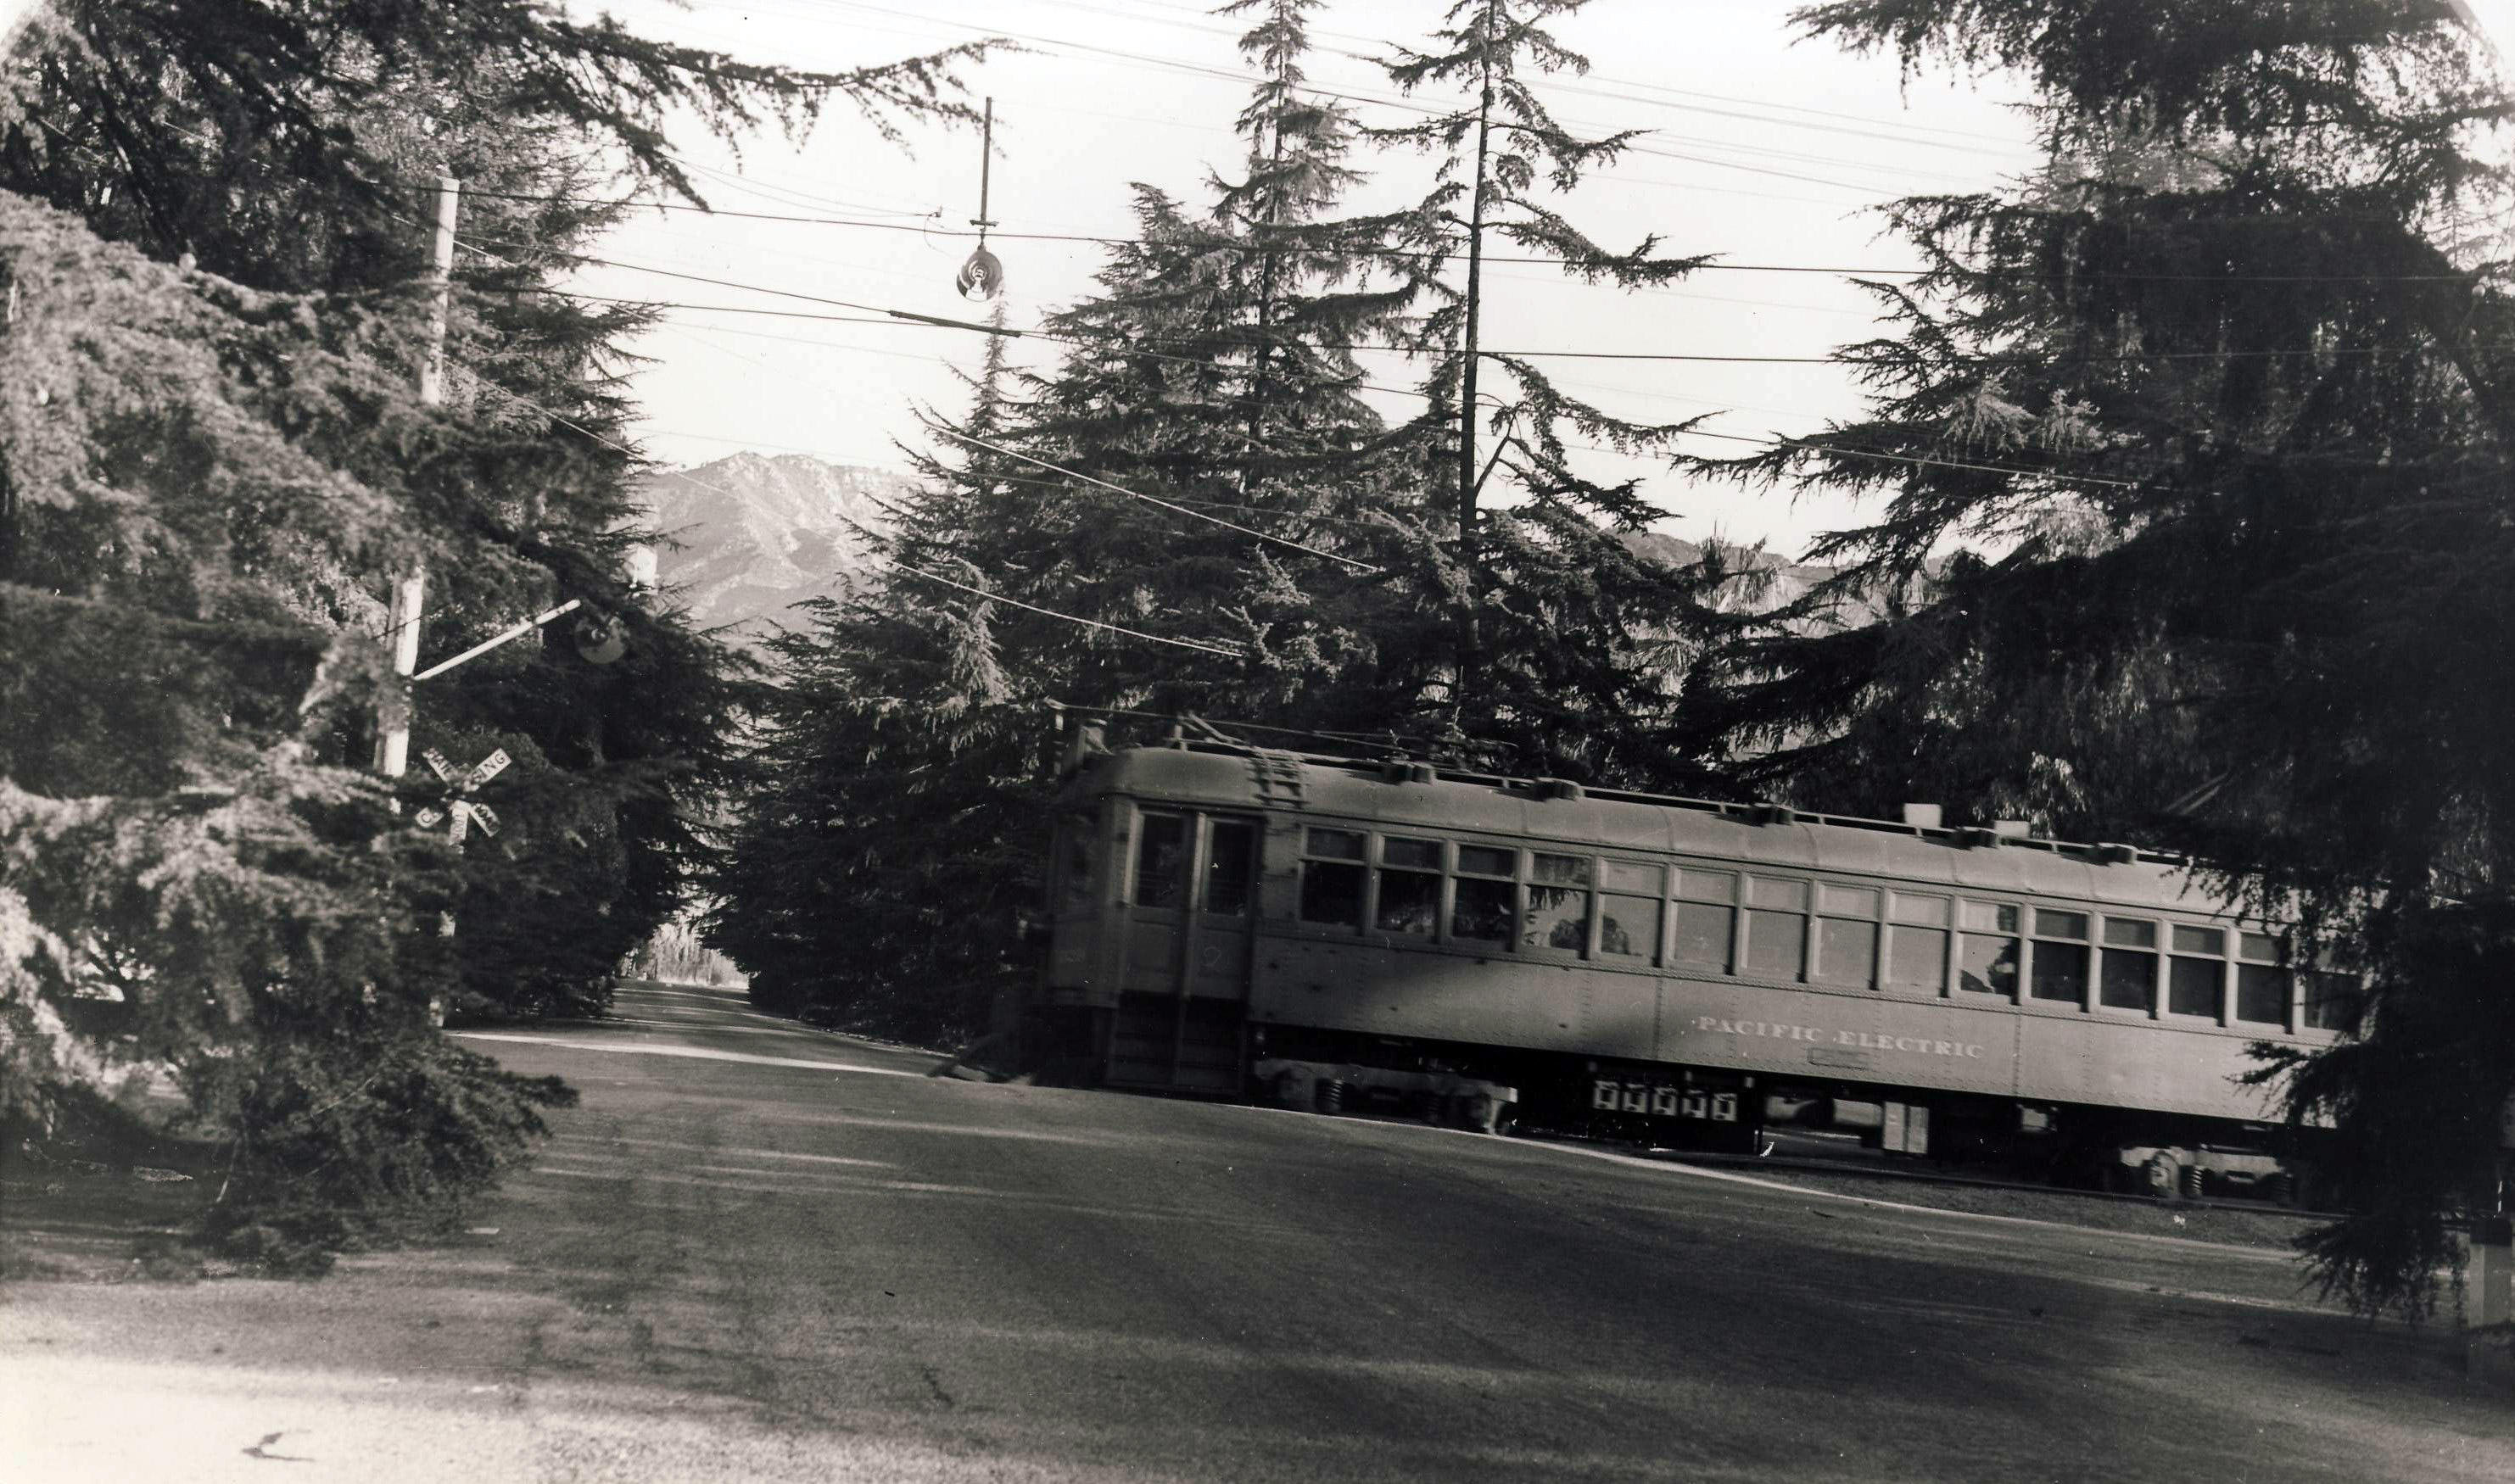 1123 At Christmas Tree Lane Pacific Electric Railway Historical